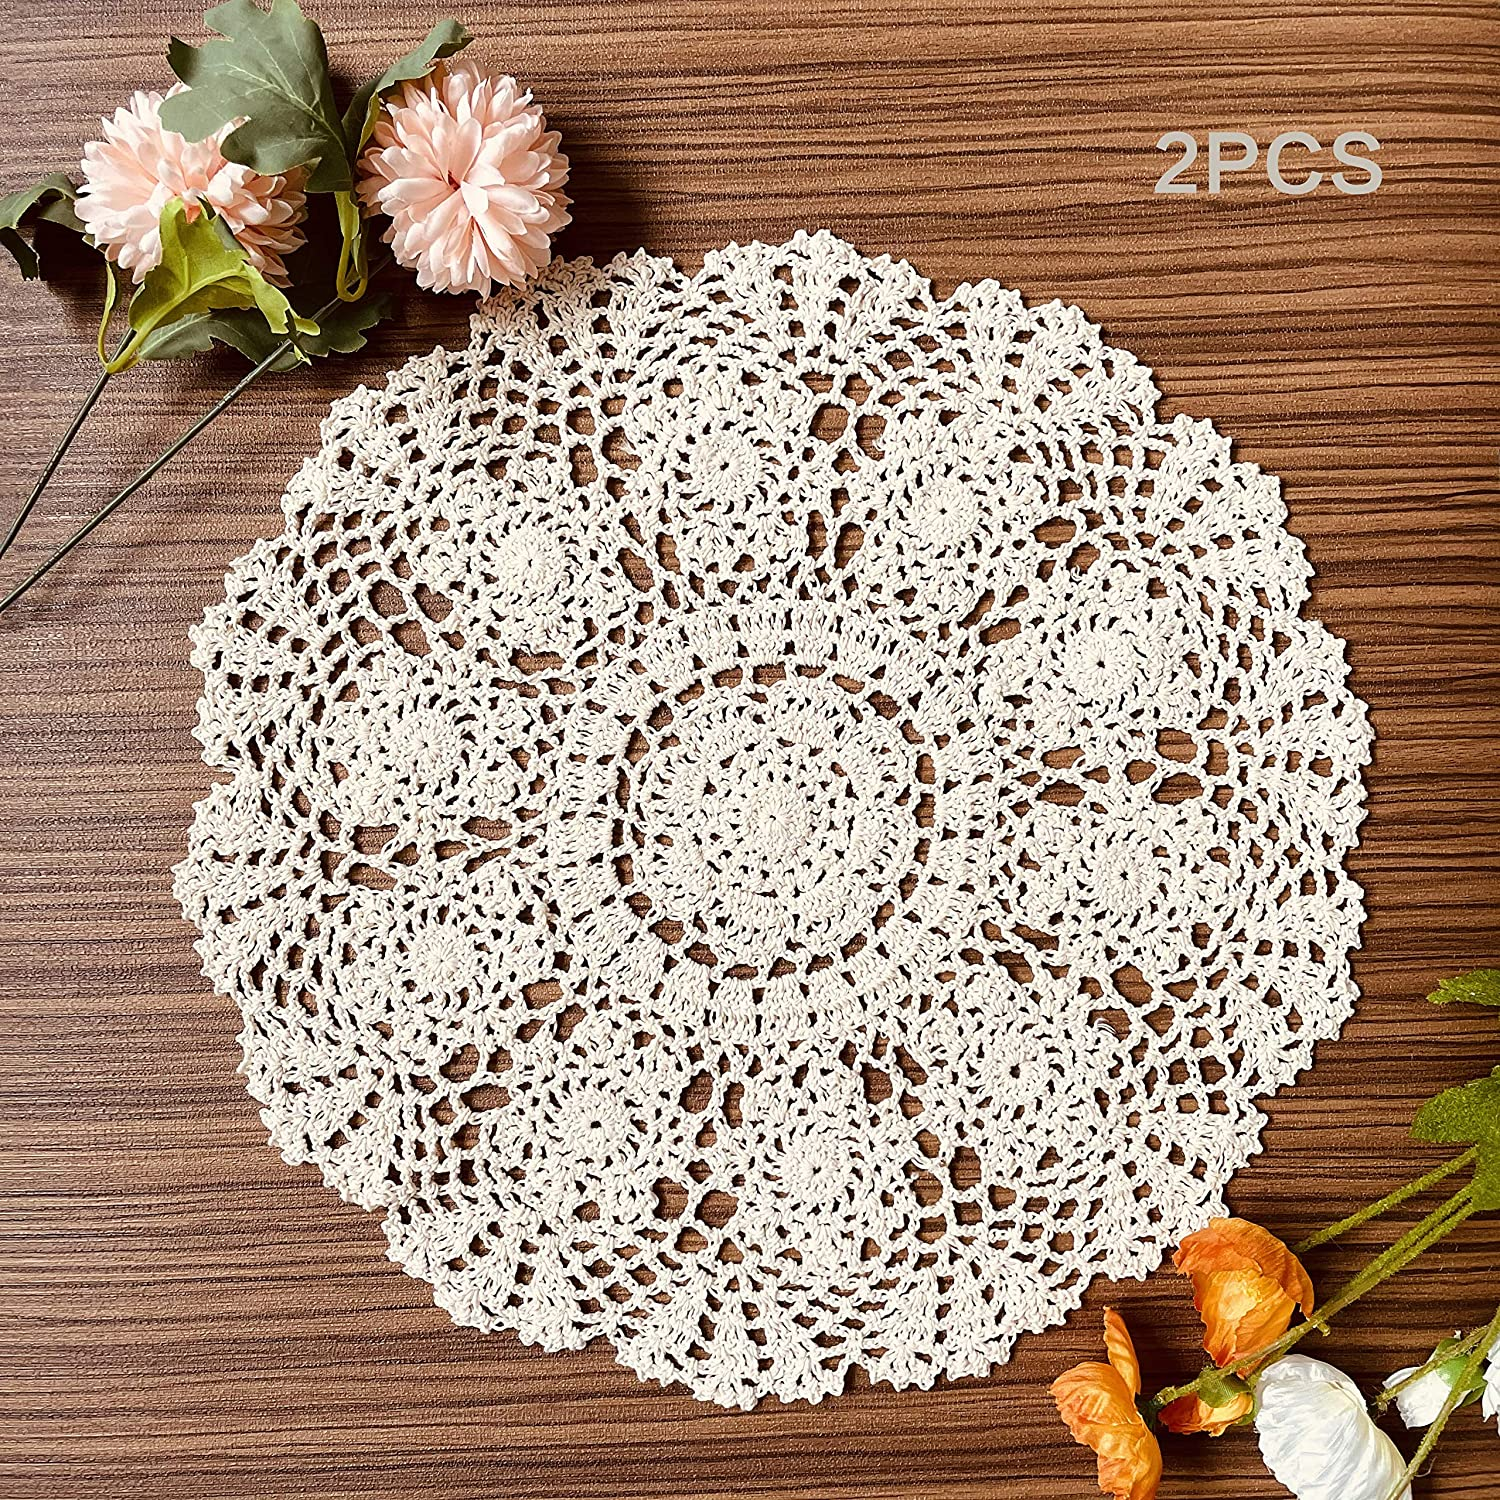 COOKY Handmade Crochet Doilies 2Pcs discount Cloth Table Indefinitely Placemats Lace